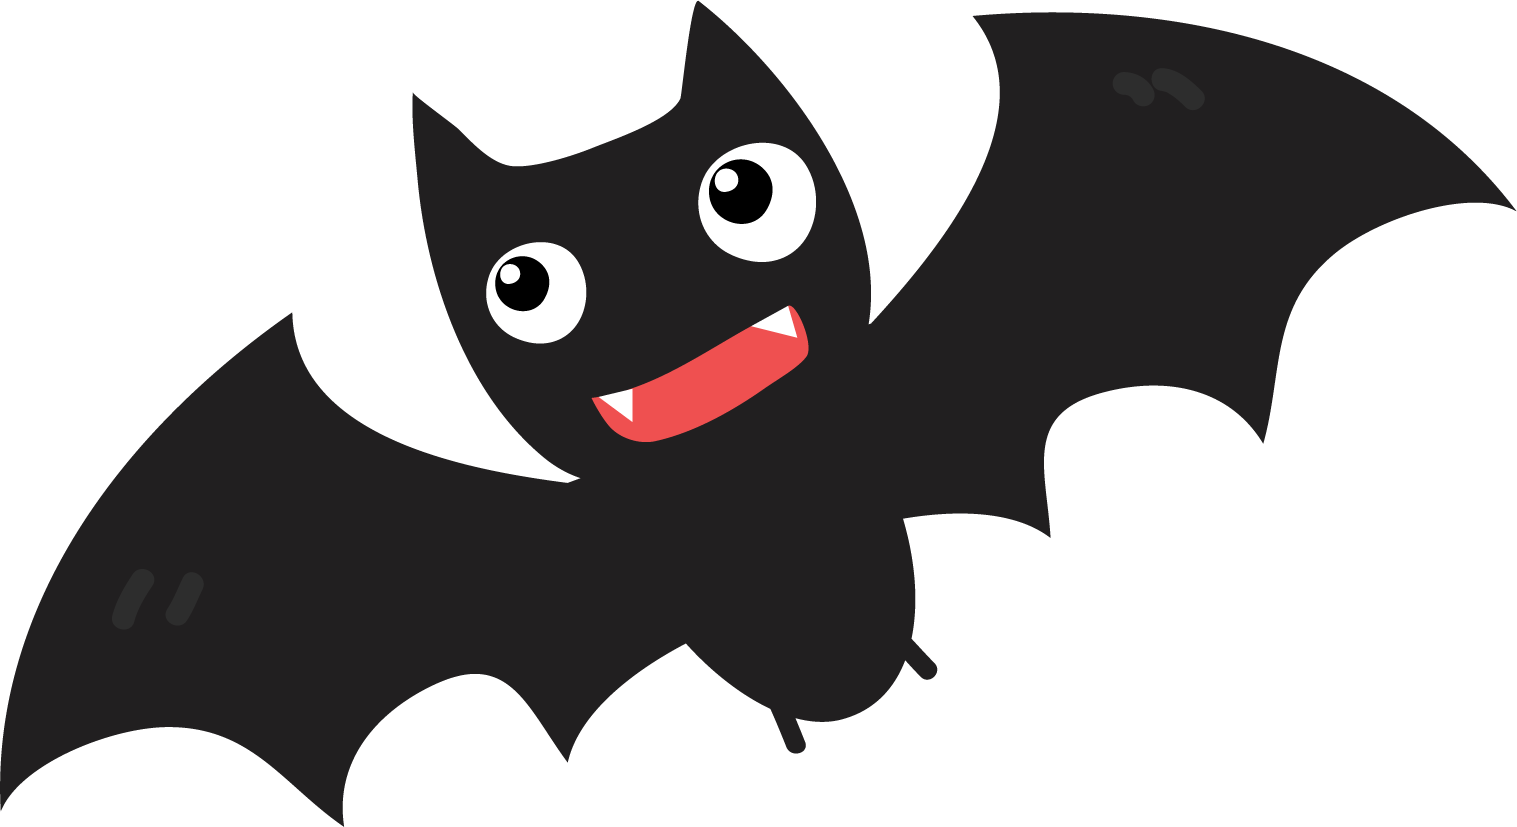 bat bats clipart transparent clip covid character animal 1517 patheos webstockreview 1958 einer menschen geniale mit pngio library scary epidemics